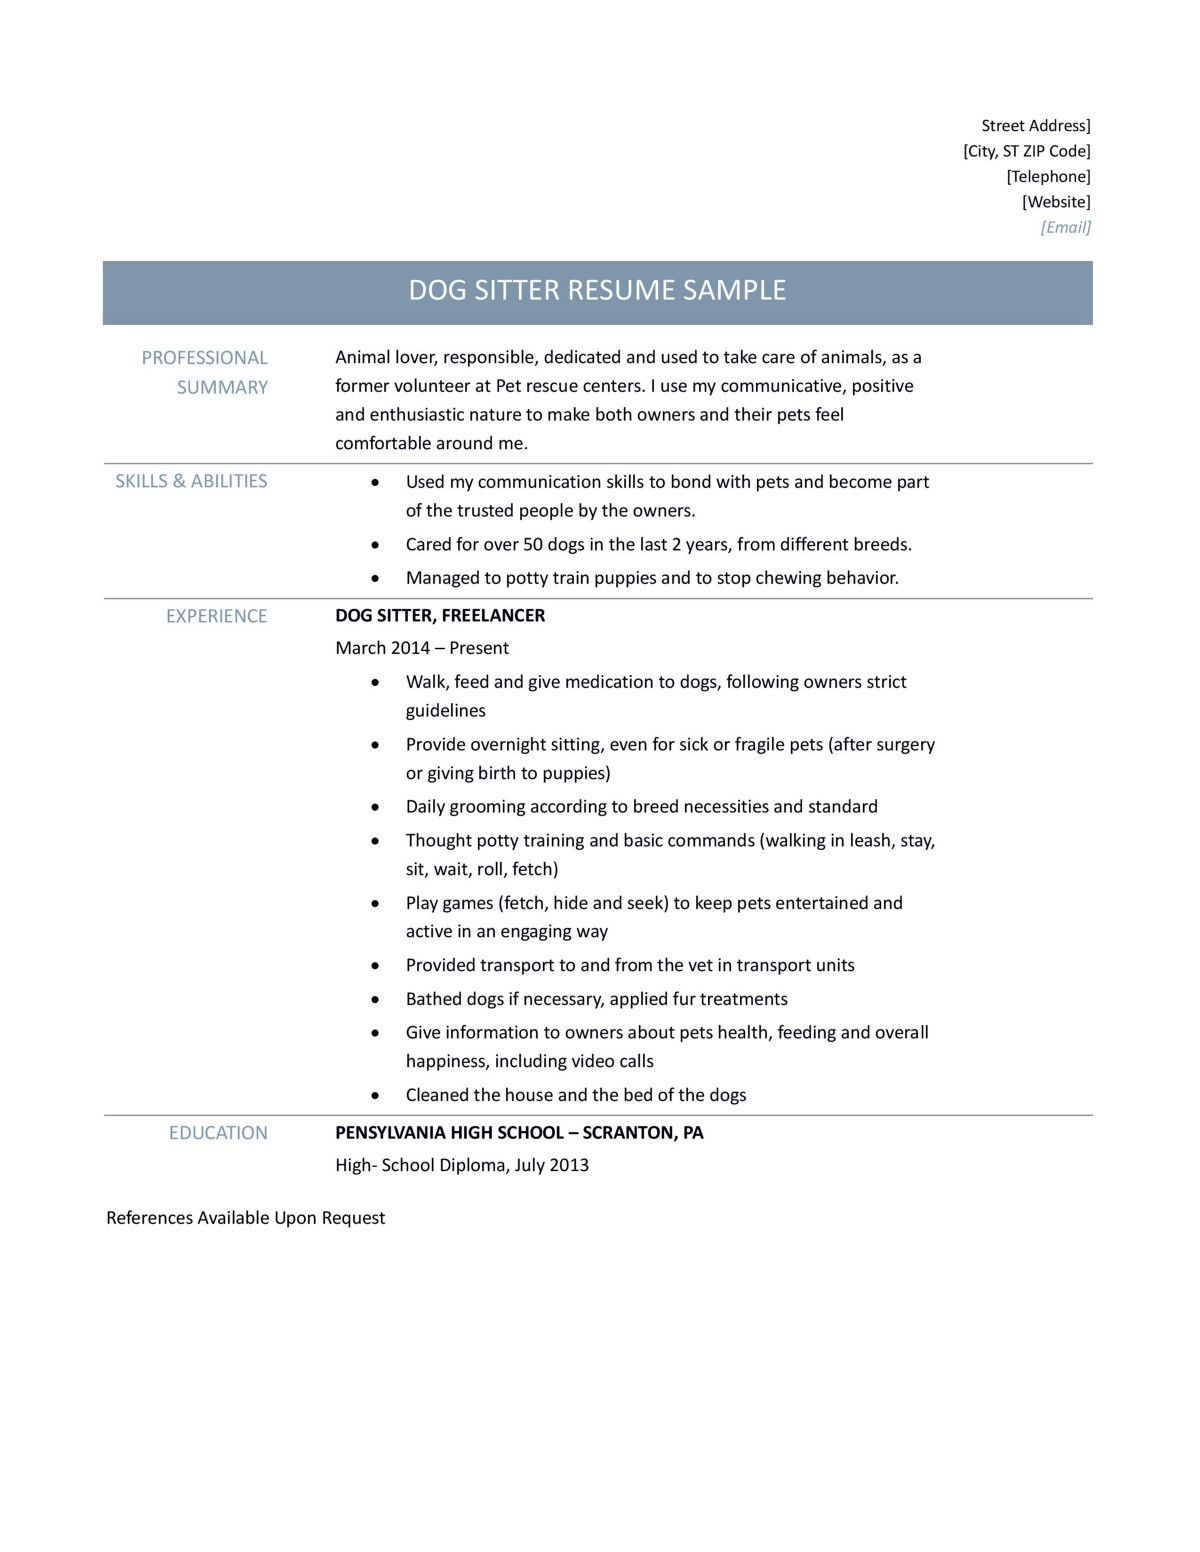 Dog Sitter Resume Samples Tips And Template – Online